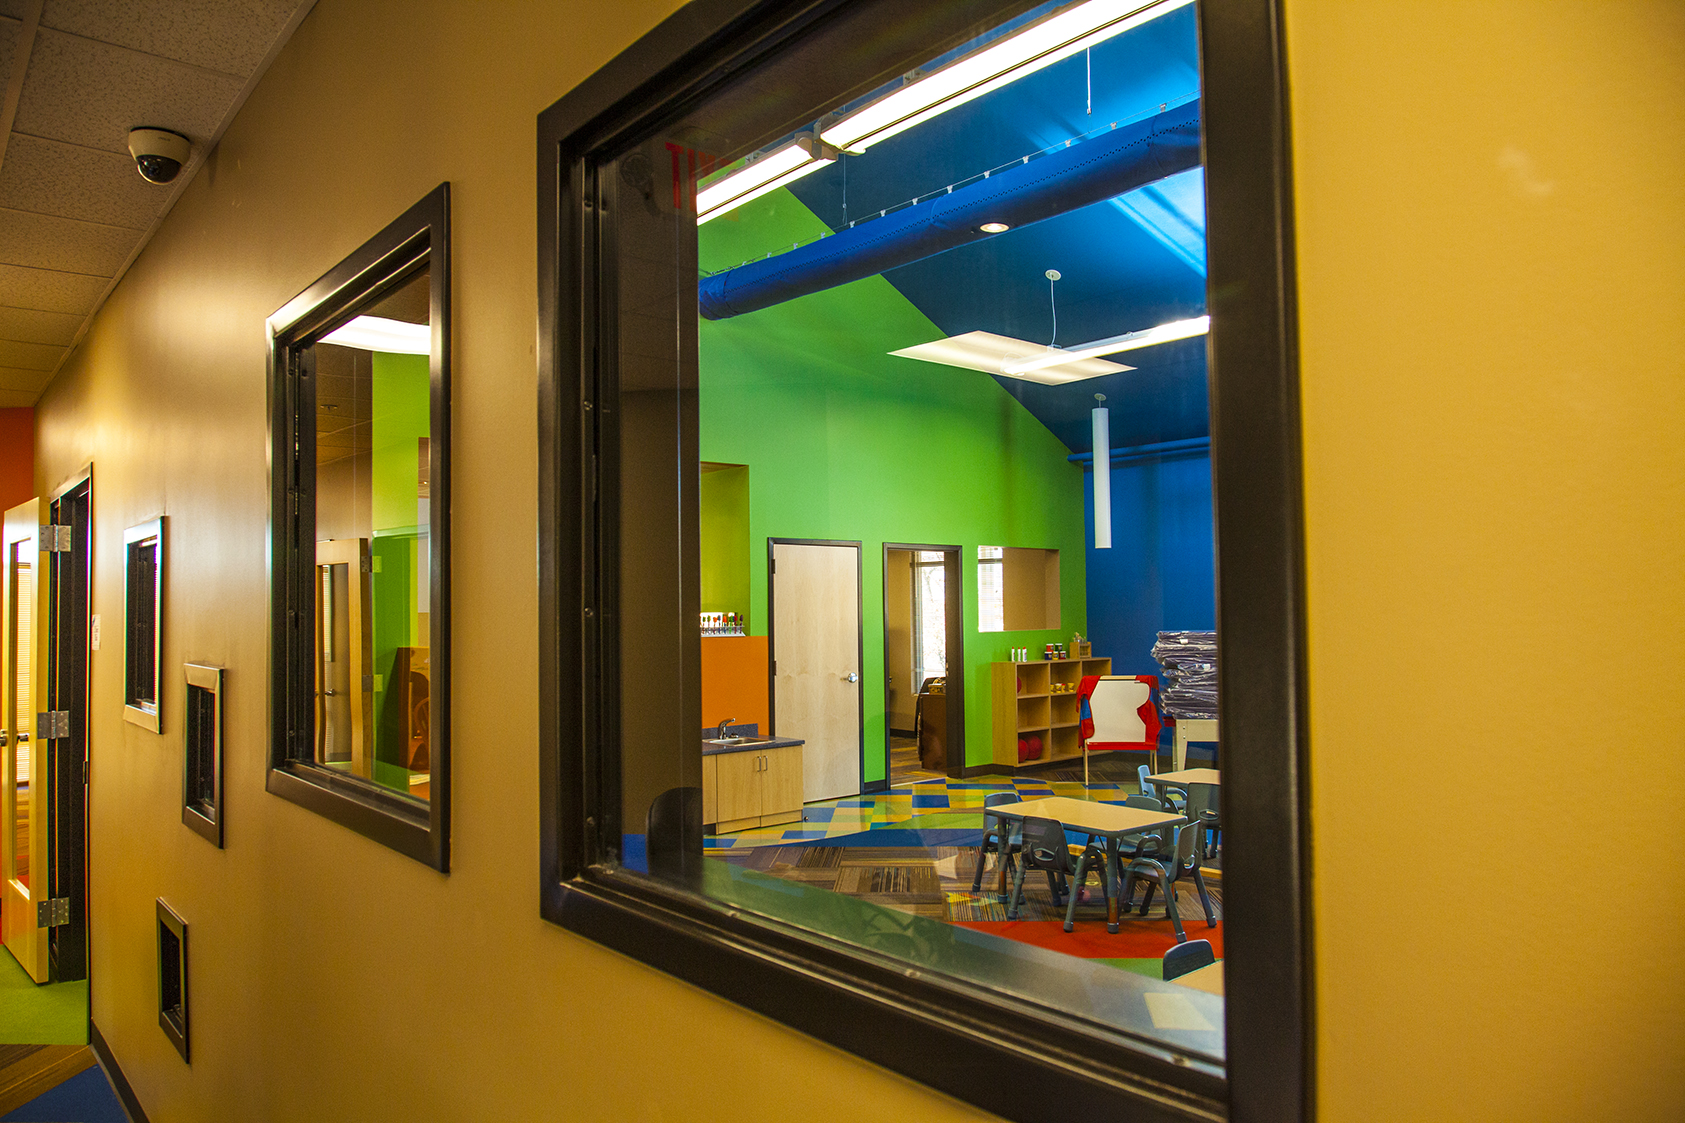 Eastern Shawnee Early Childhood Learning Center